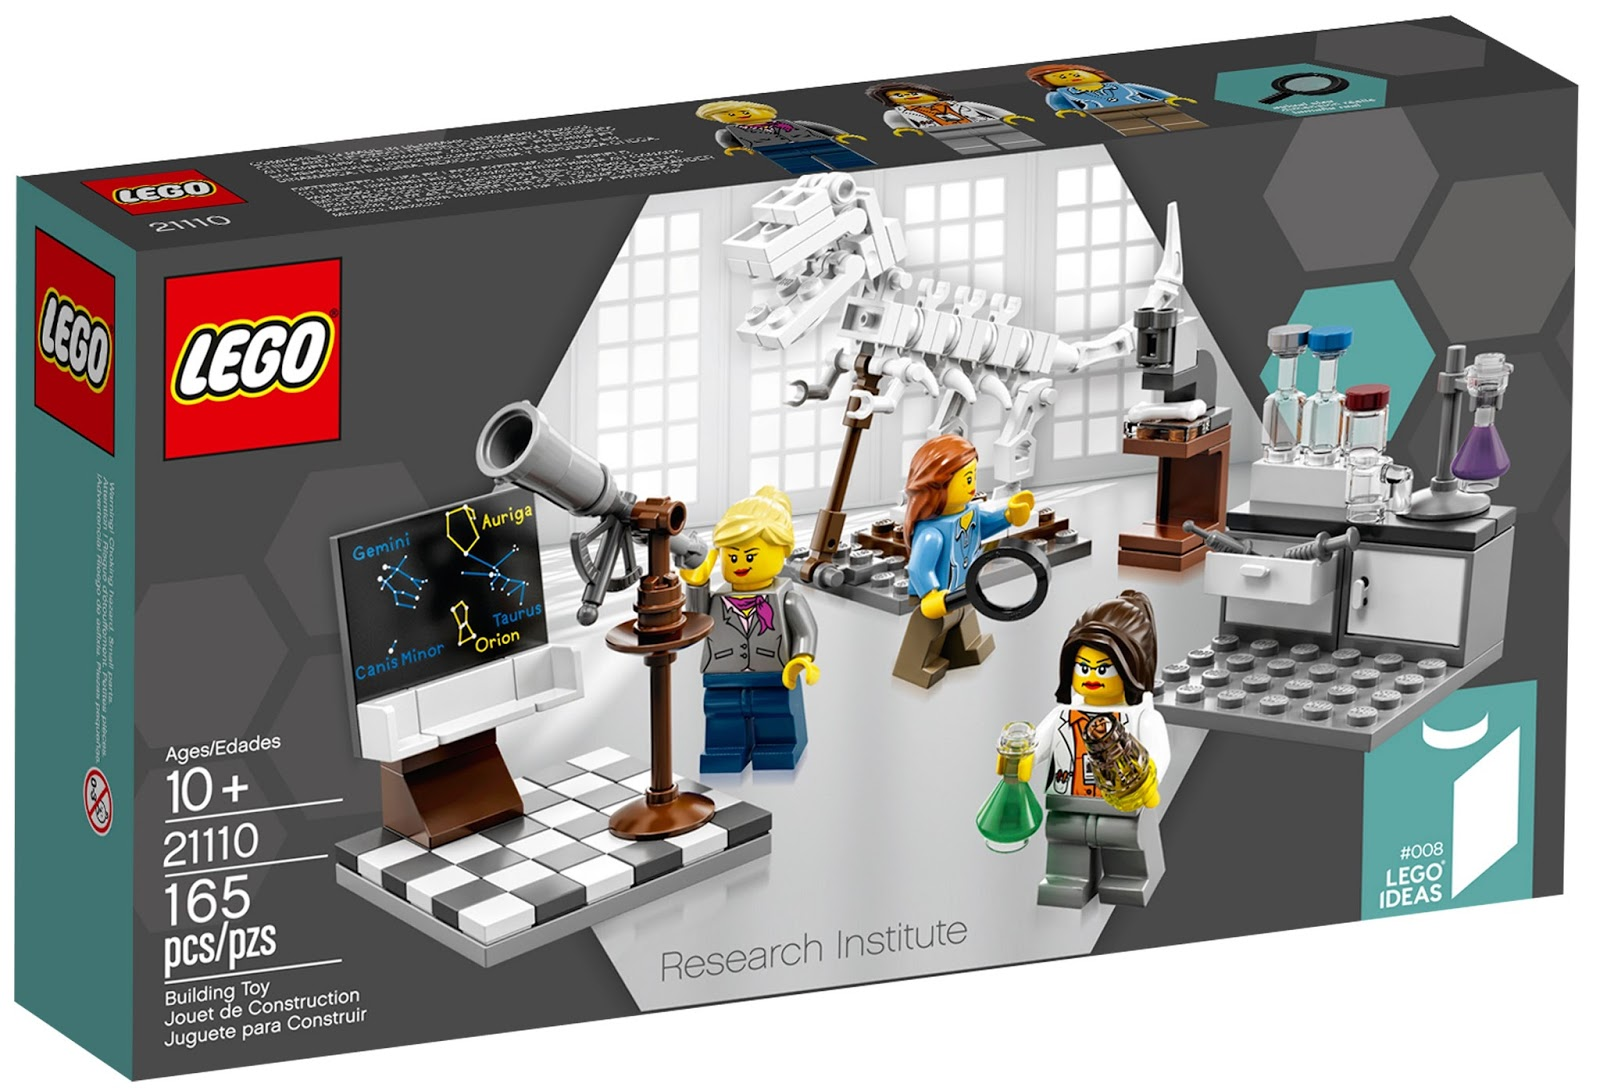 The Brickverse: Research Institute official images